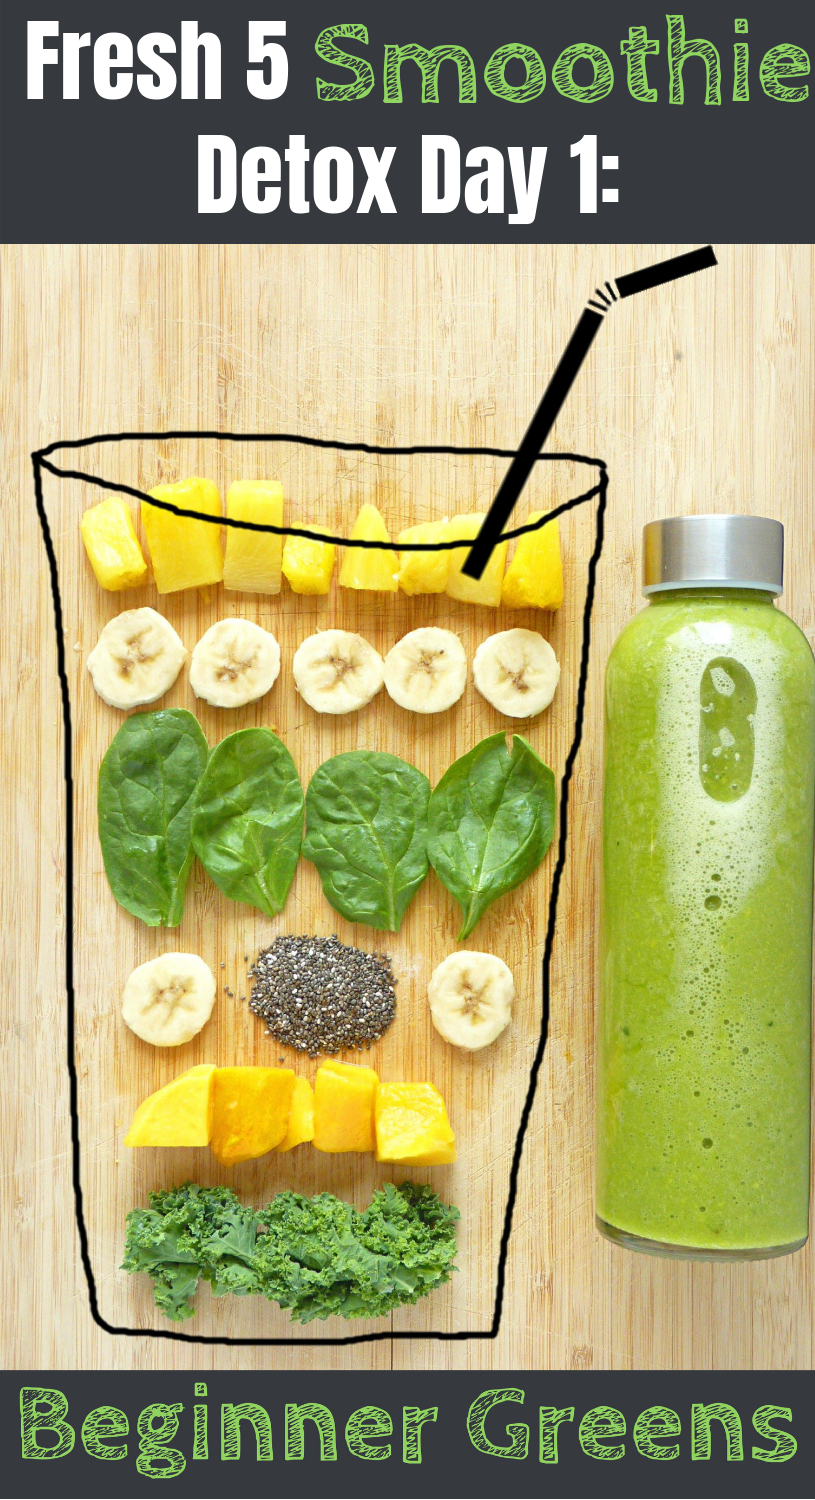 5-Day Smoothie Detox Diet Plan. 1 Delicious meal replacement smoothie recipe each day for weight loss, increased energy, glowing skin, and vitality. Get your FREE recipe book + detox plan compete with smoothie hacks, exclusive discounts, and daily motivation! #dietplan #detoxcleanse #smoothierecipes #detoxdrinks #healthyjuicerecipes